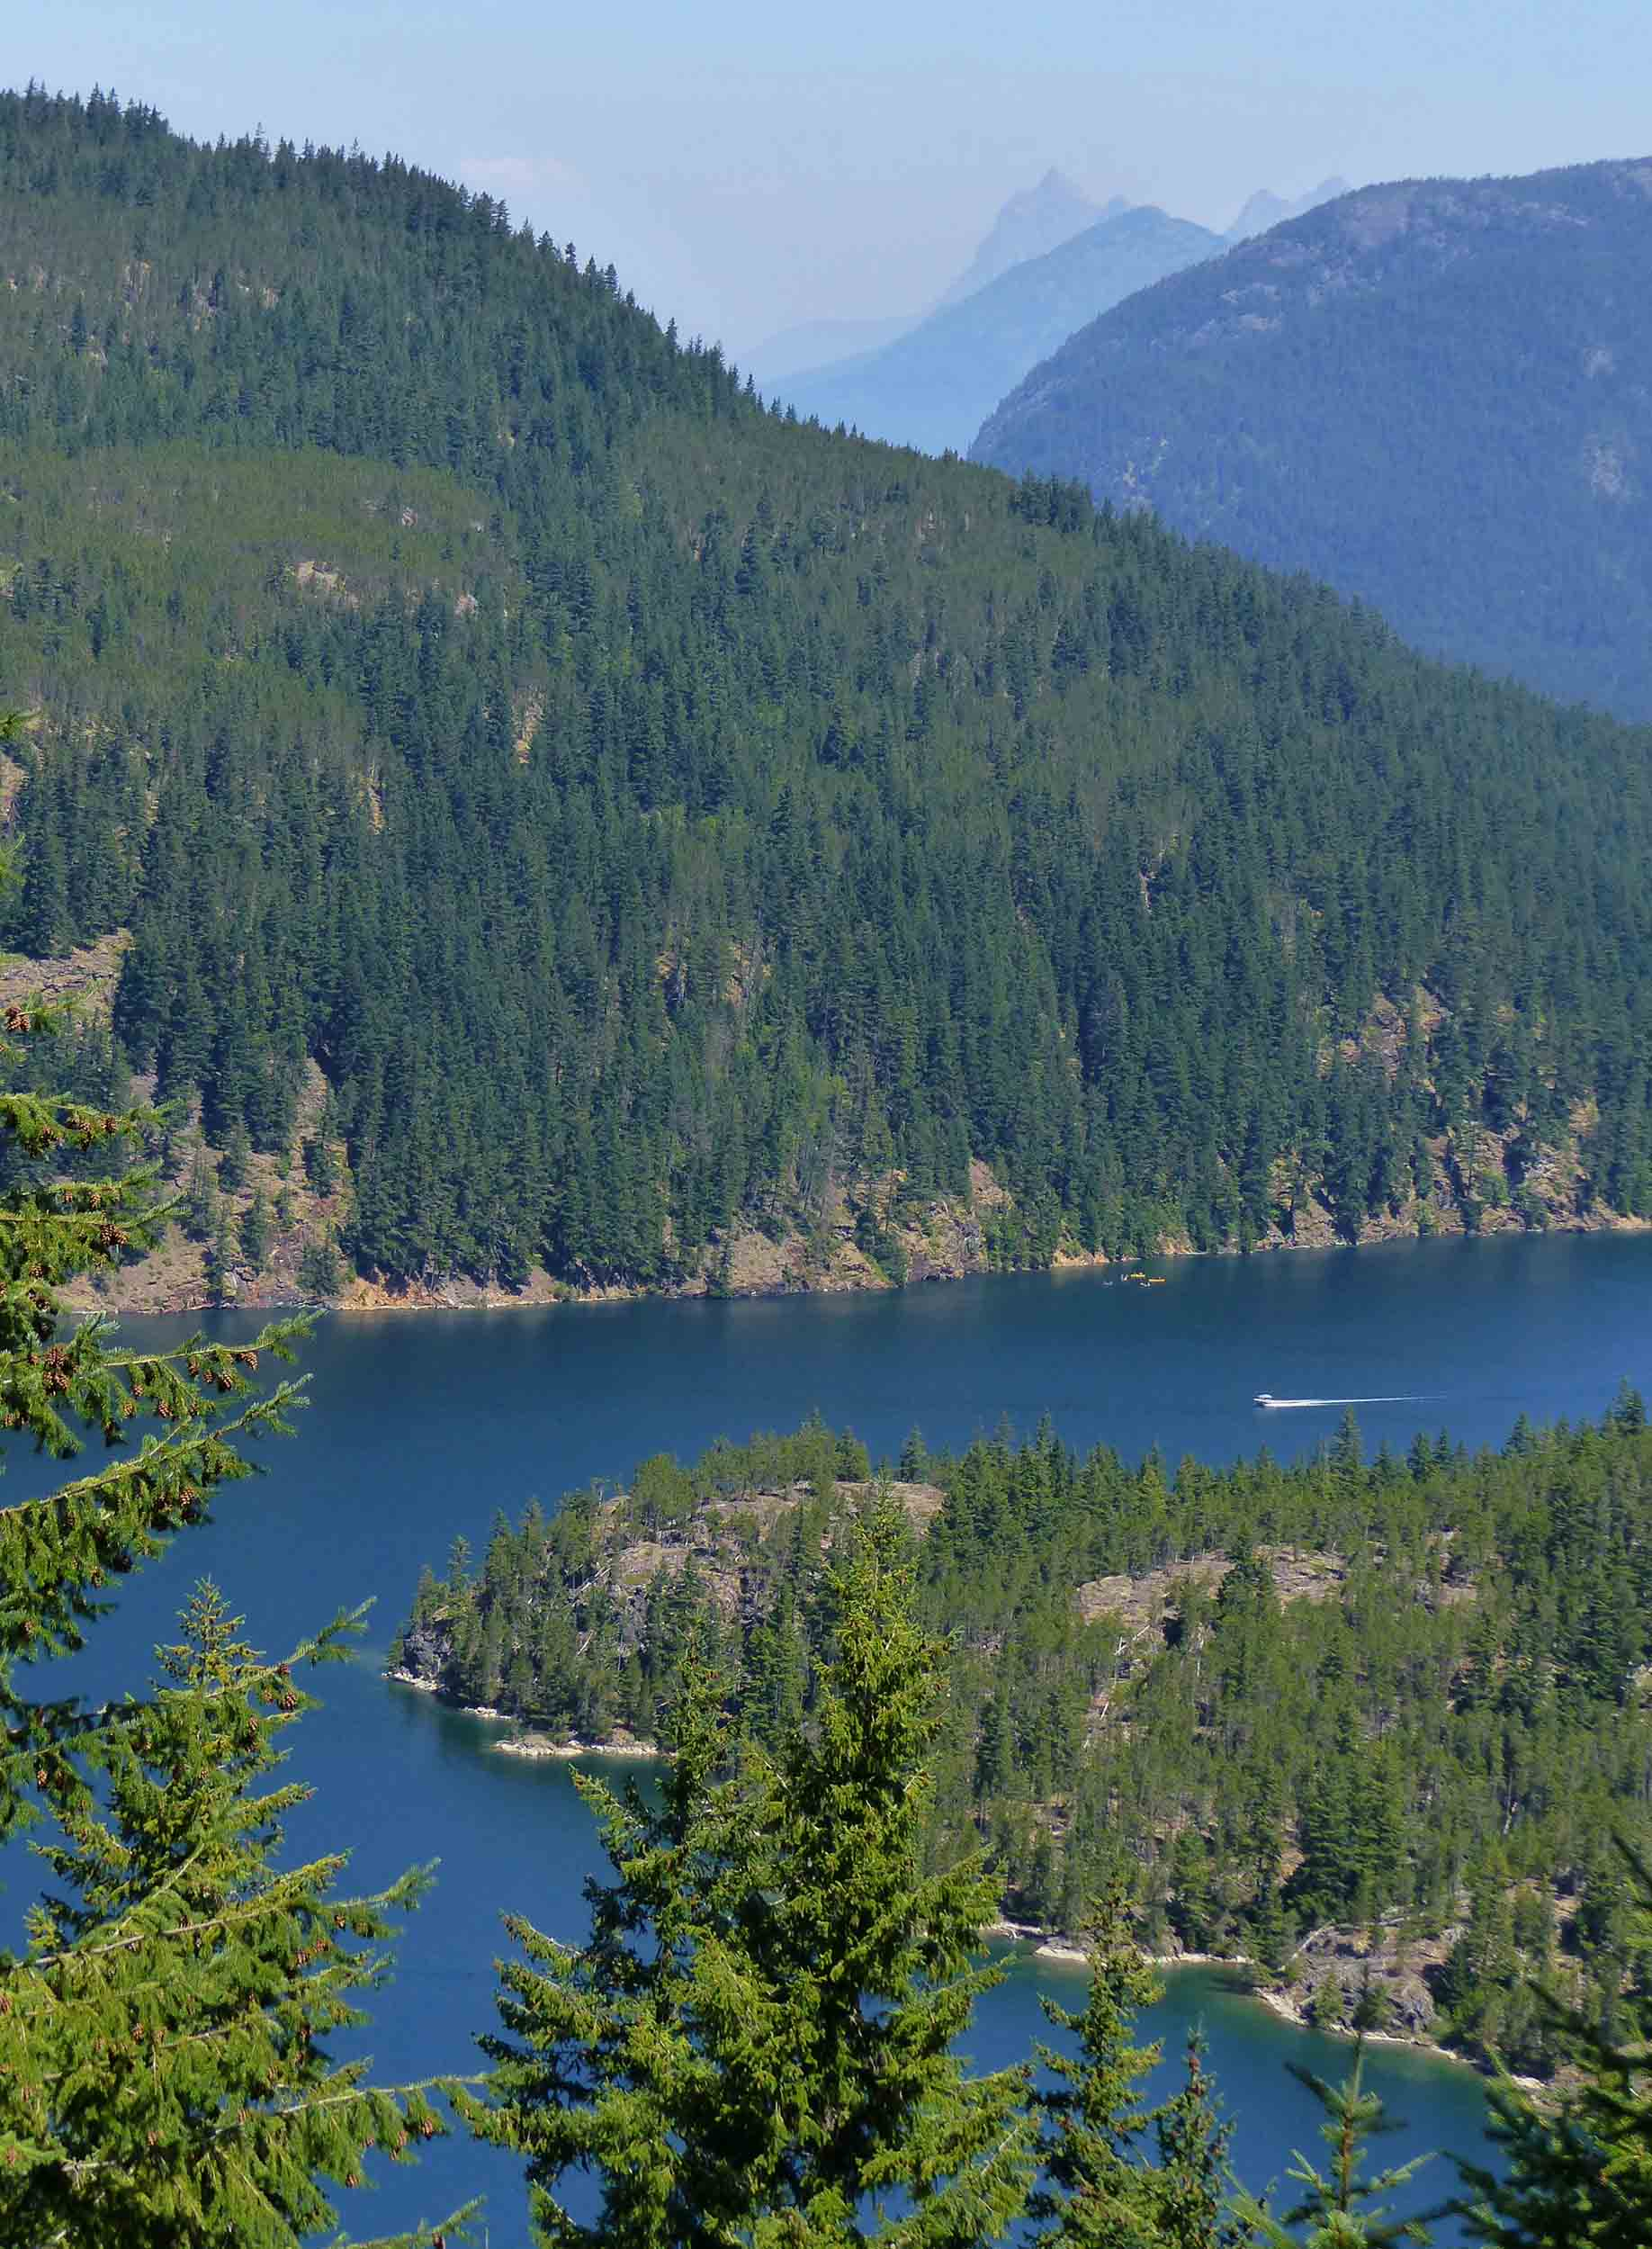 Looking down at deep blue lake among pine covered mountains